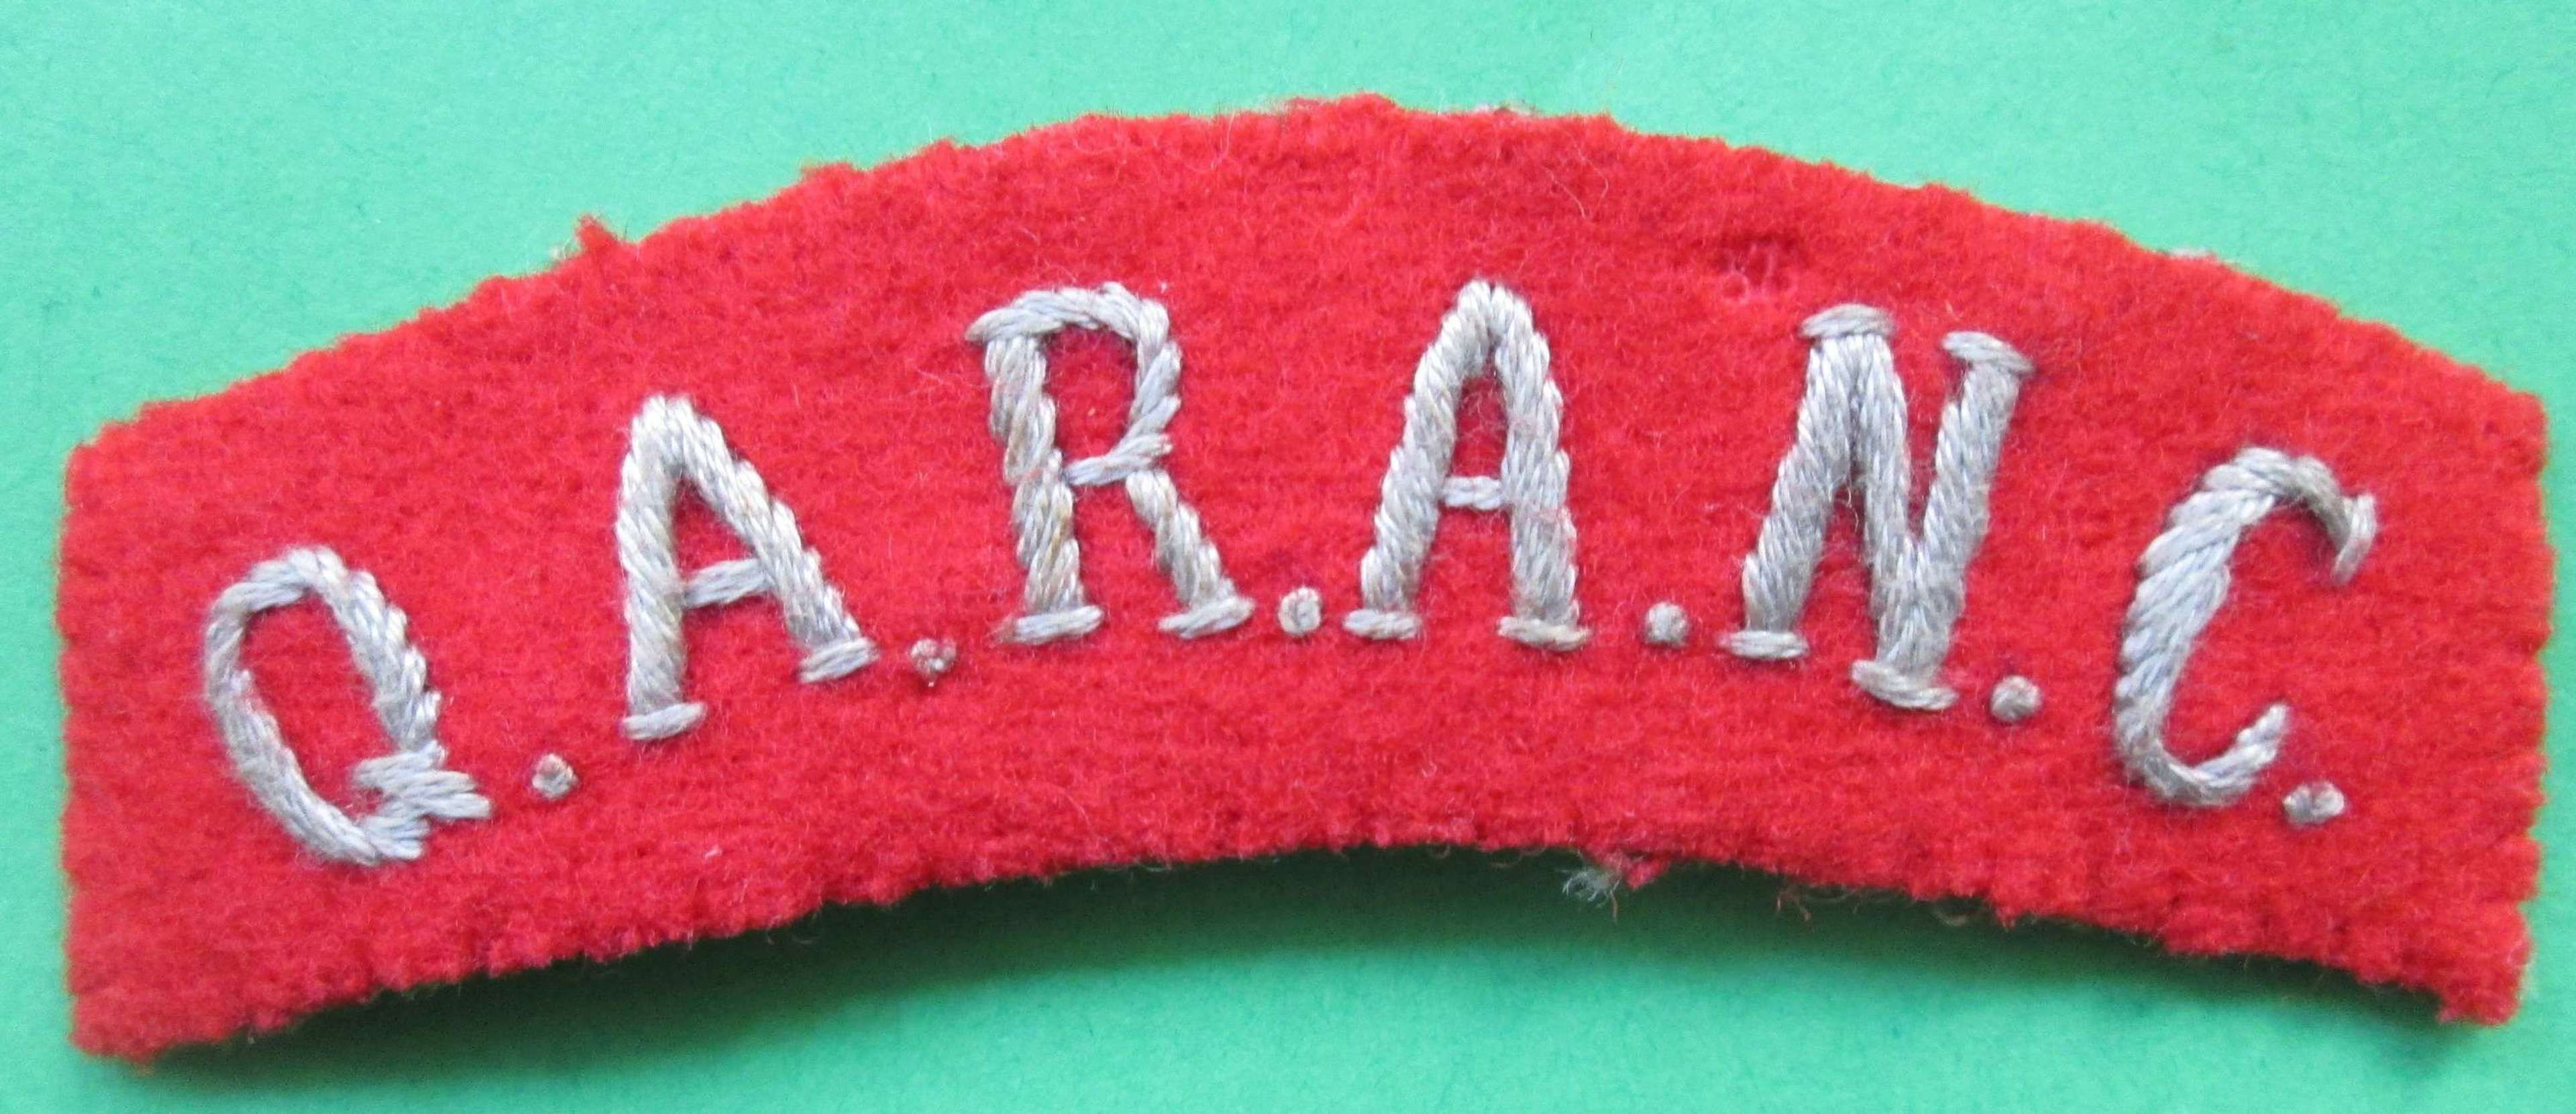 A GOOD WWII PERIOD SHOULDER TITLE FOR THE Q.A.R.A.N.C